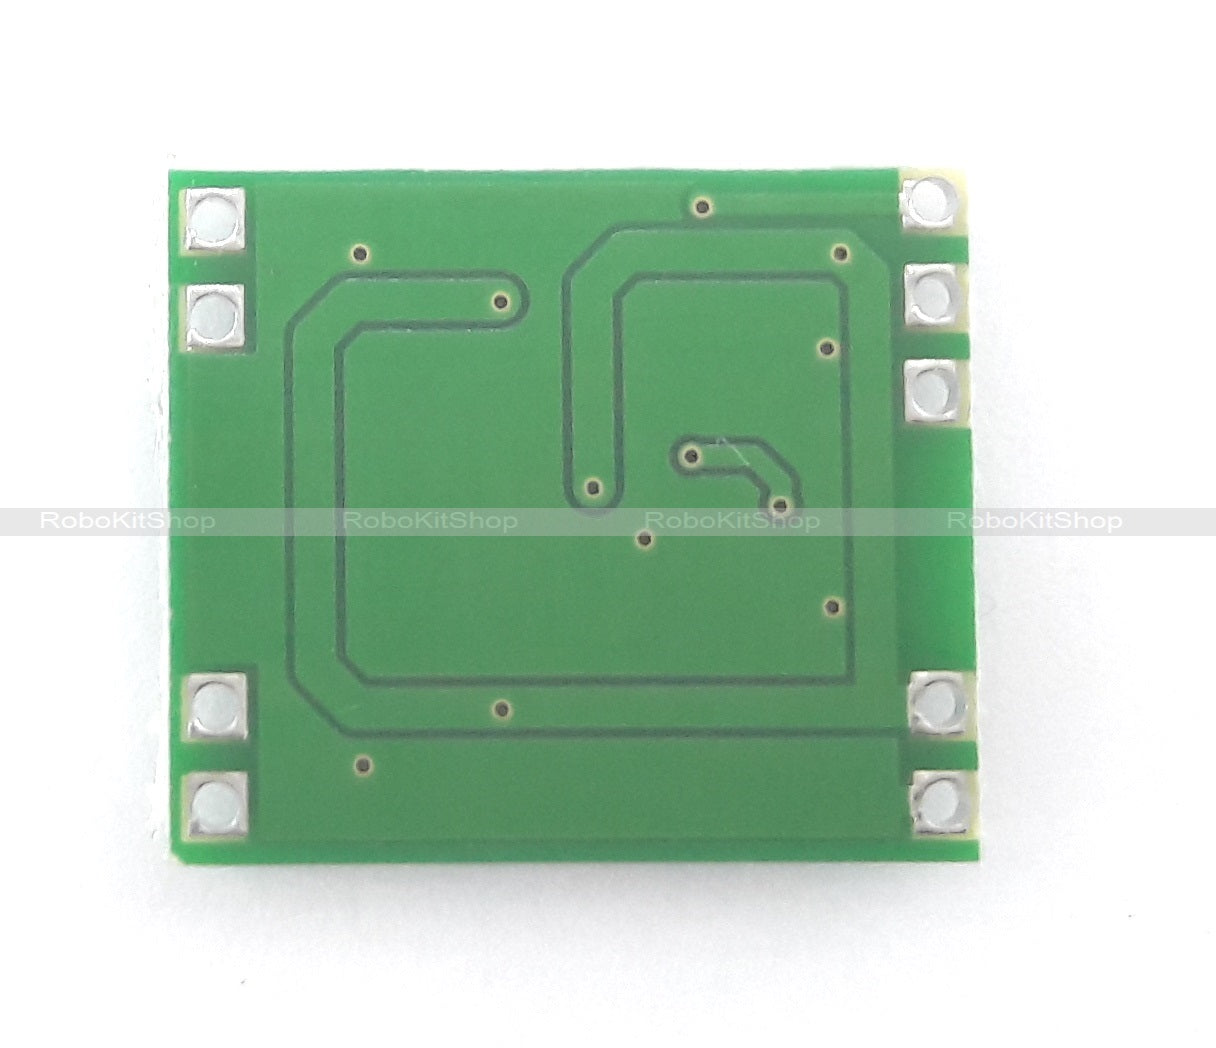 Audio Amplifier PAM8403 2 Channel 3W Class D Mini Board